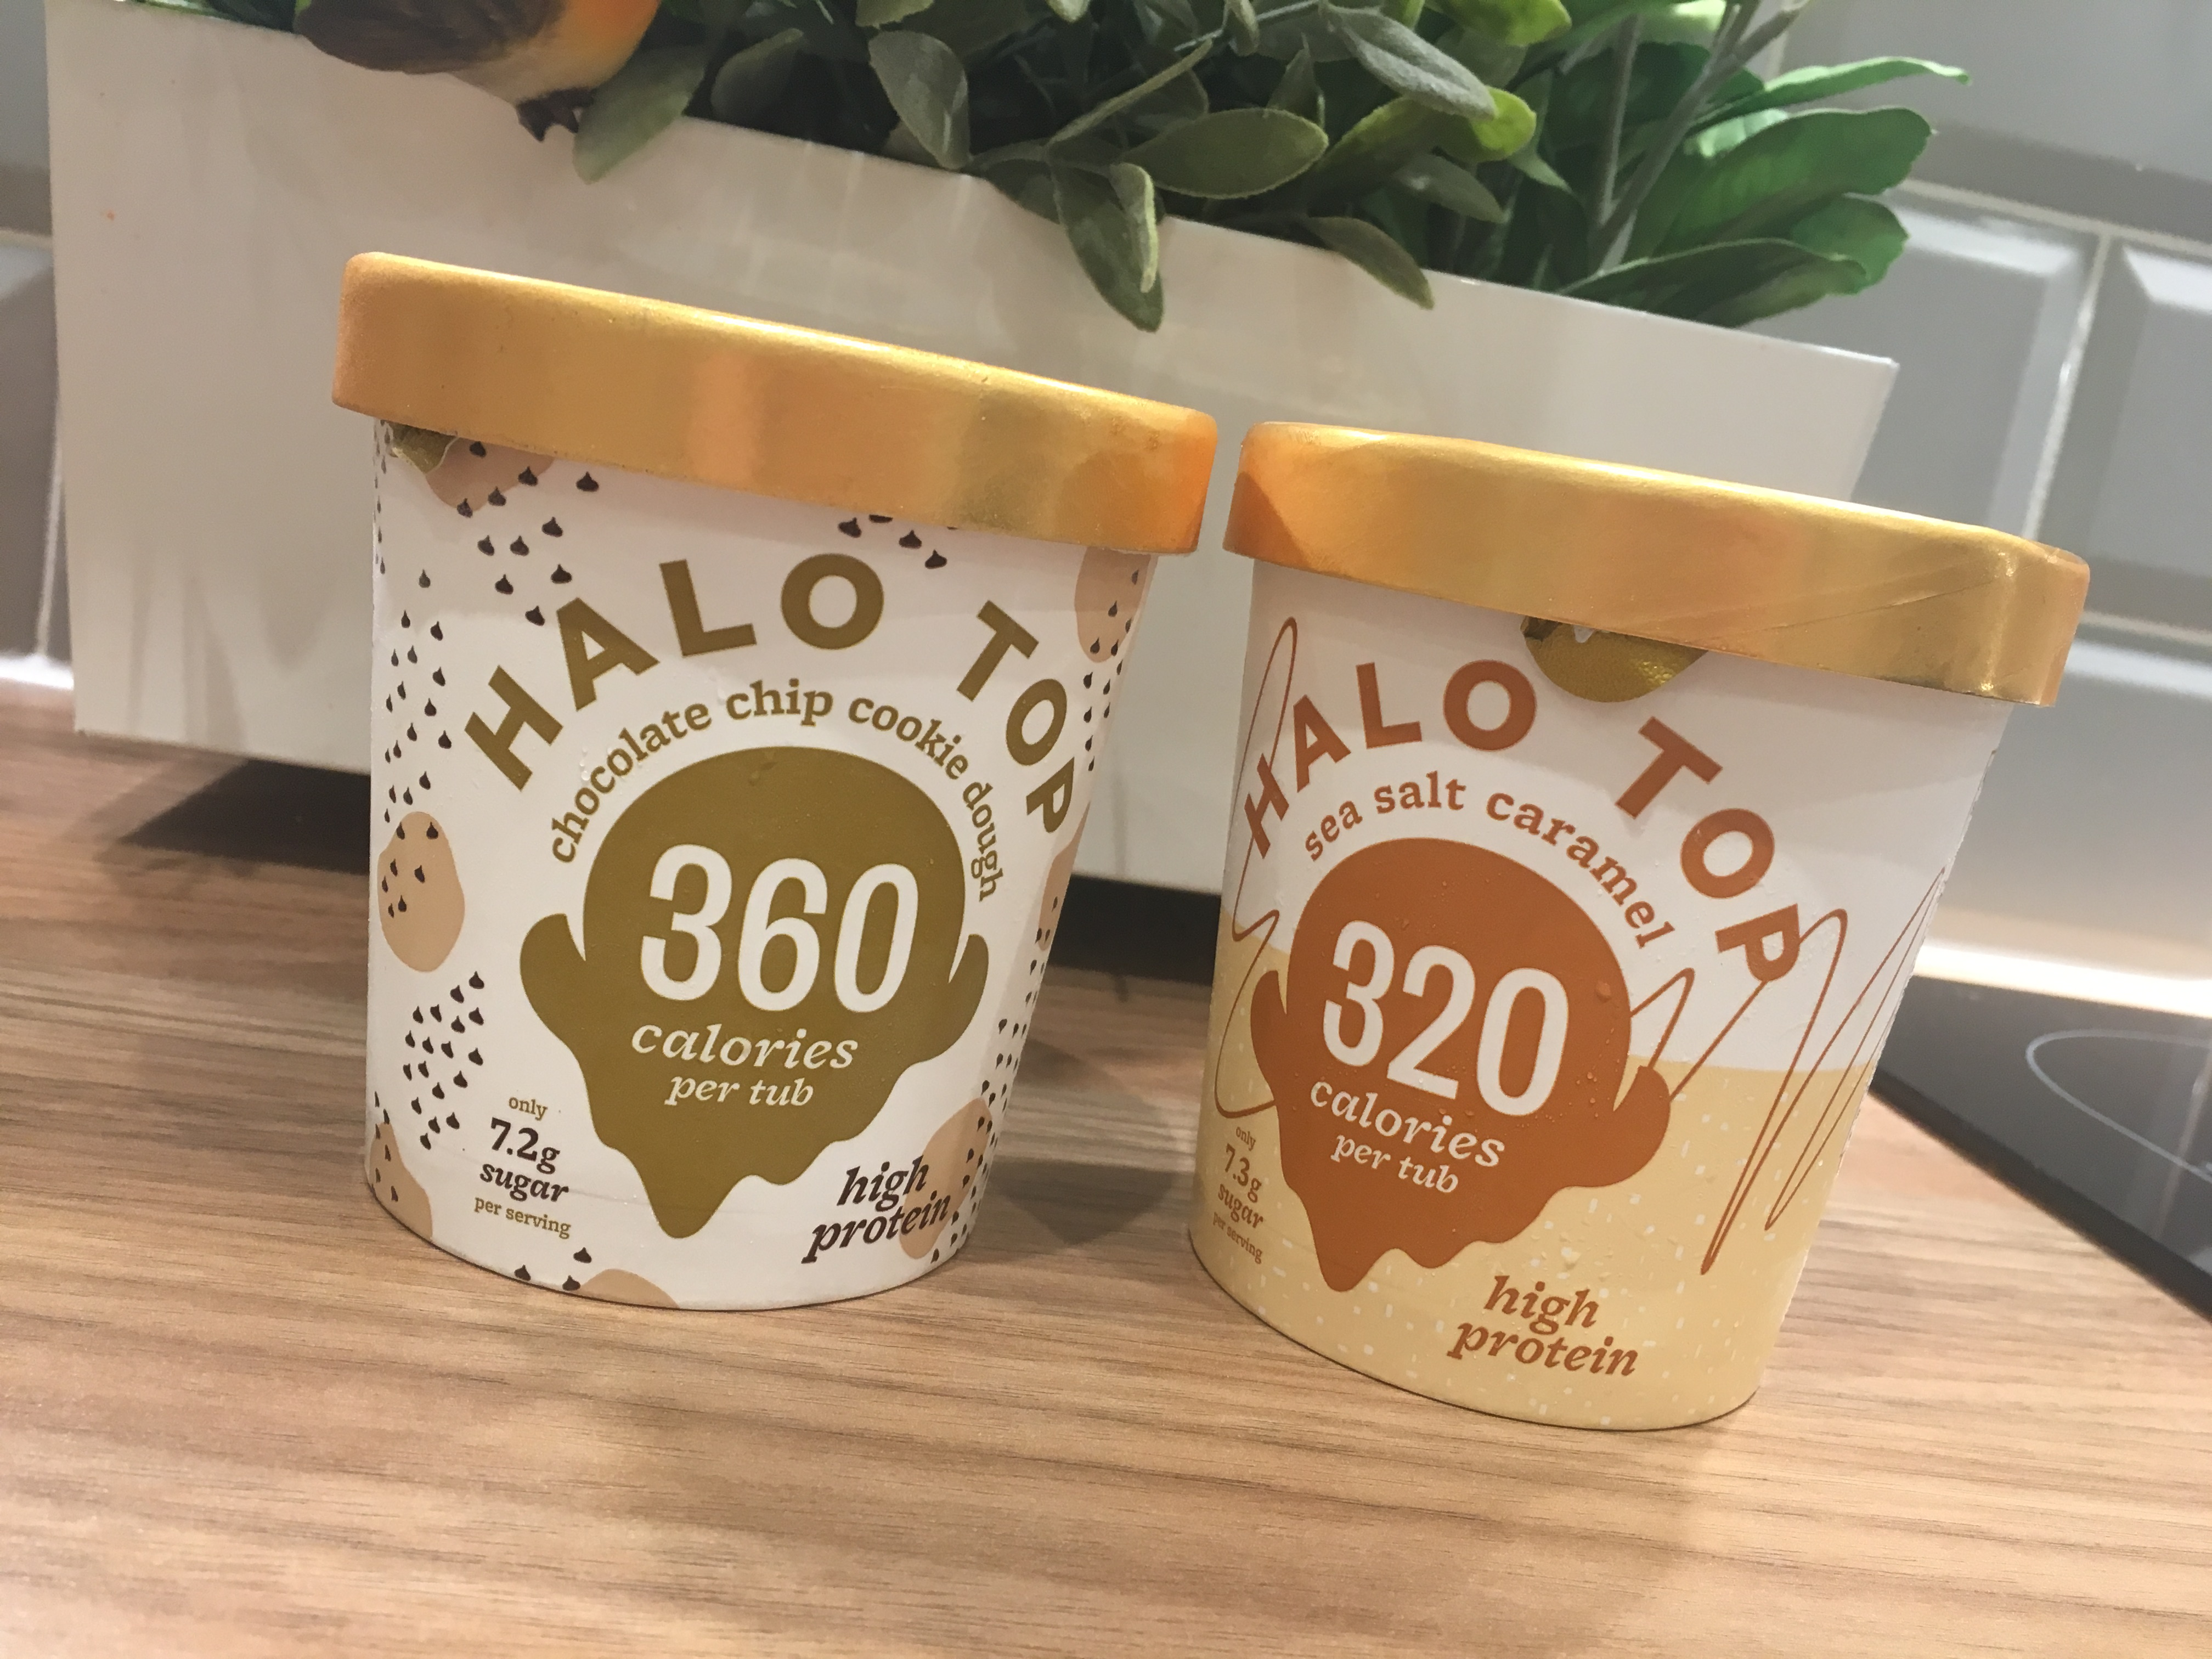 Halo Top Low Calorie Syn Icecream